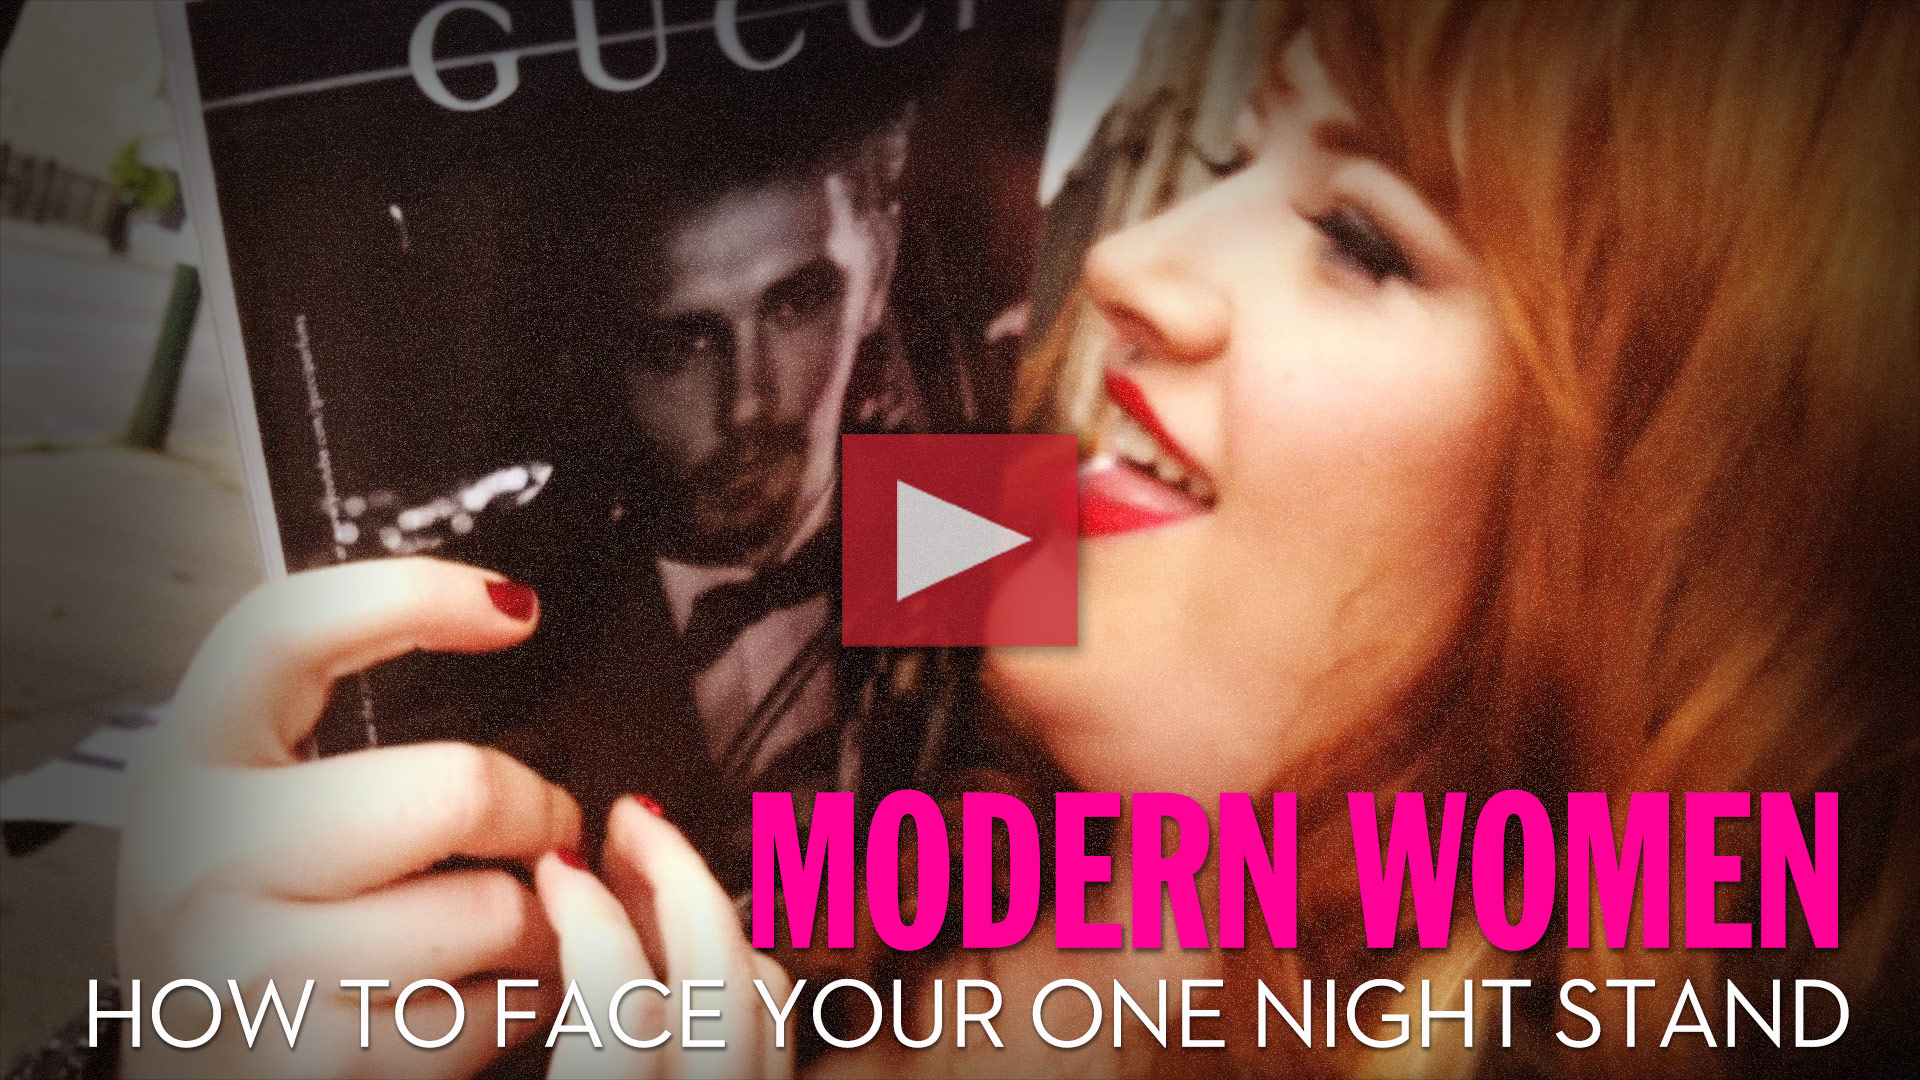 How To Face Your One Night Stand - Modern Women S2 E4